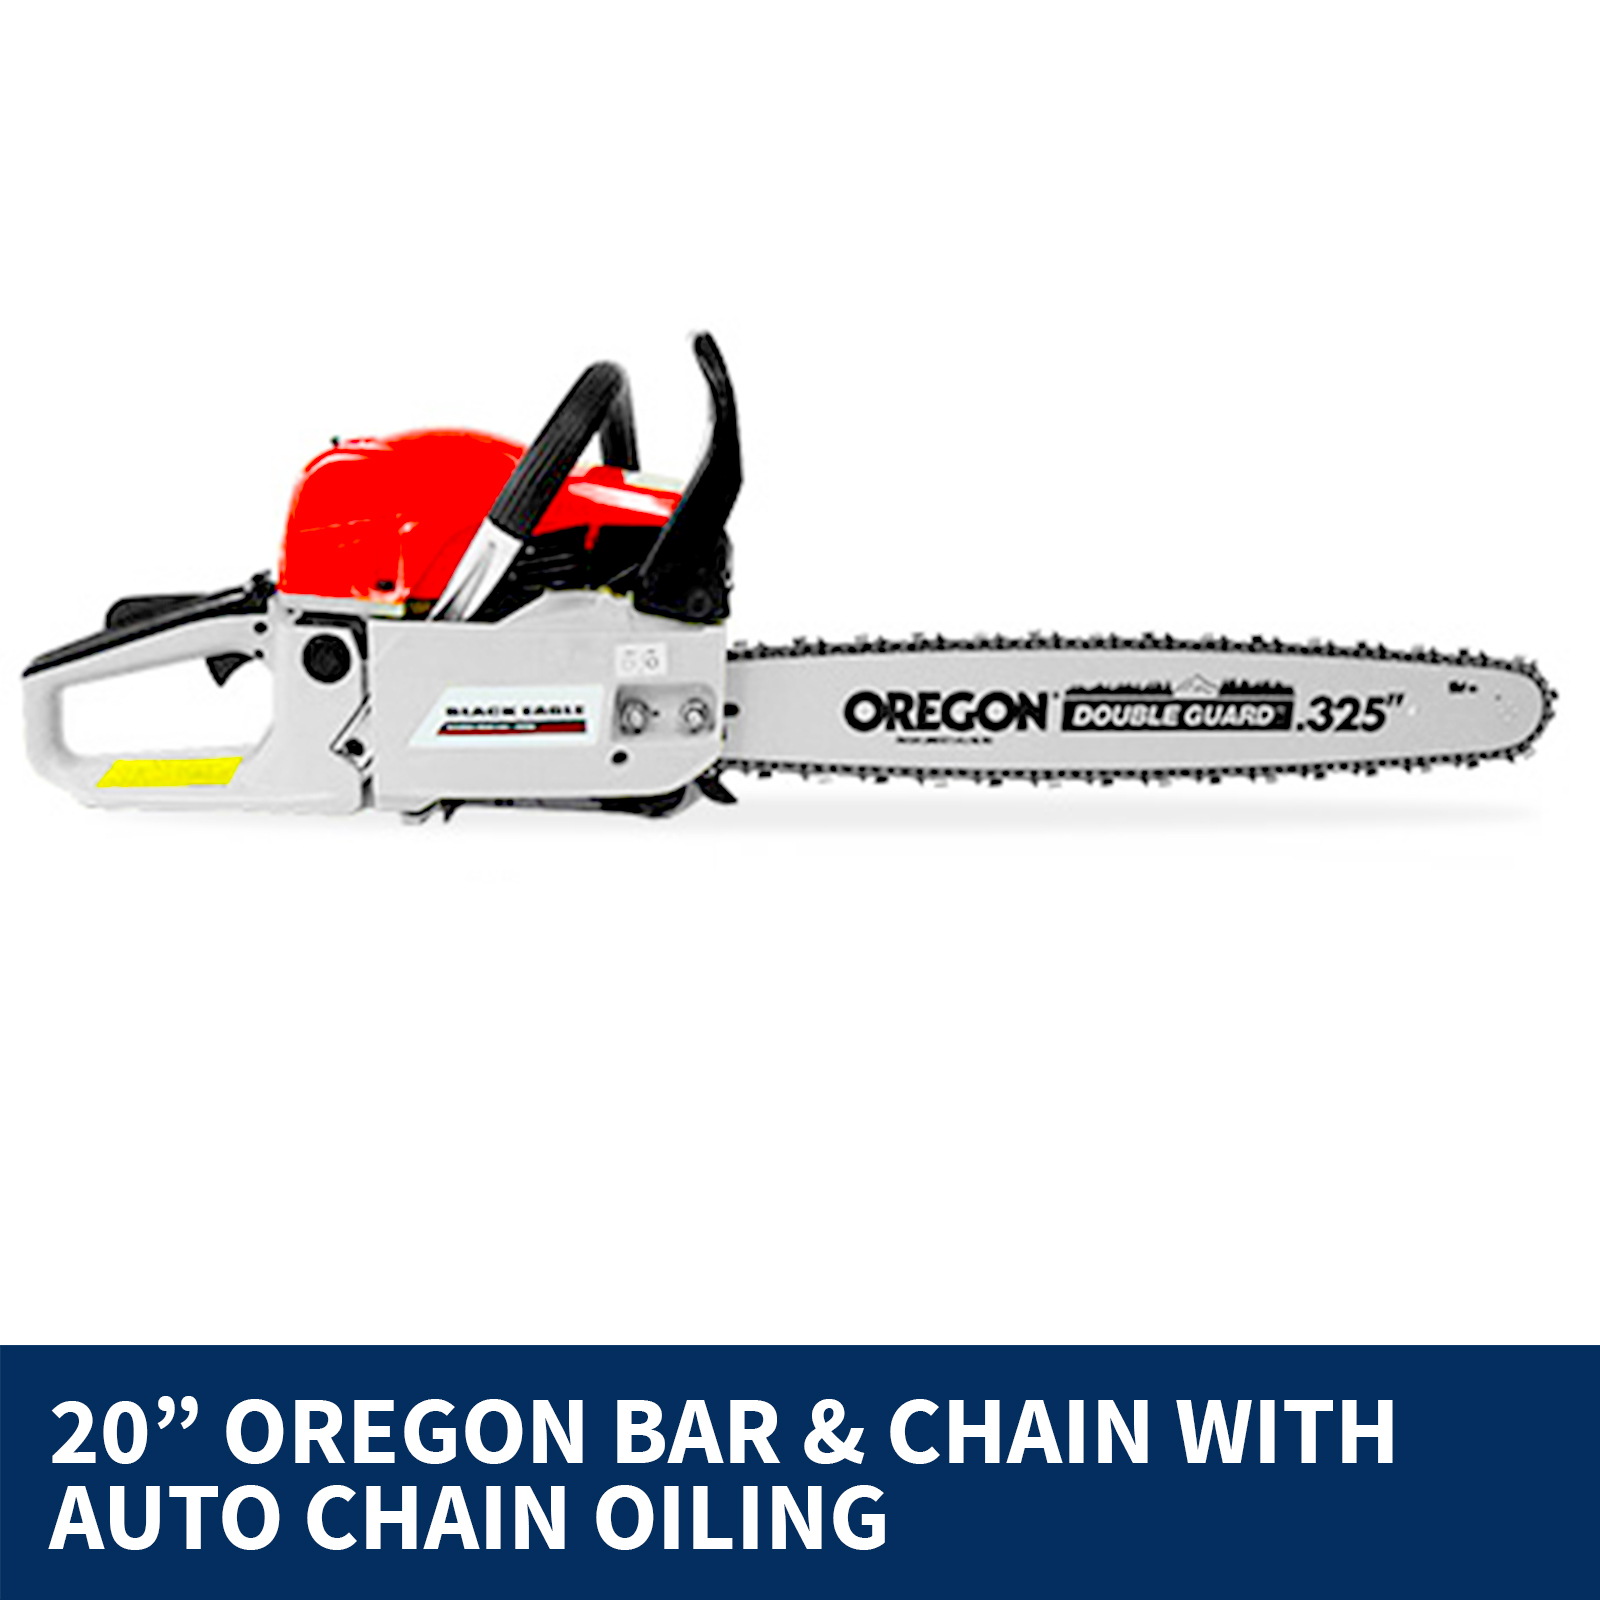 "Black Eagle 20"" OREGON 58cc Commercial Petrol Chainsaw"